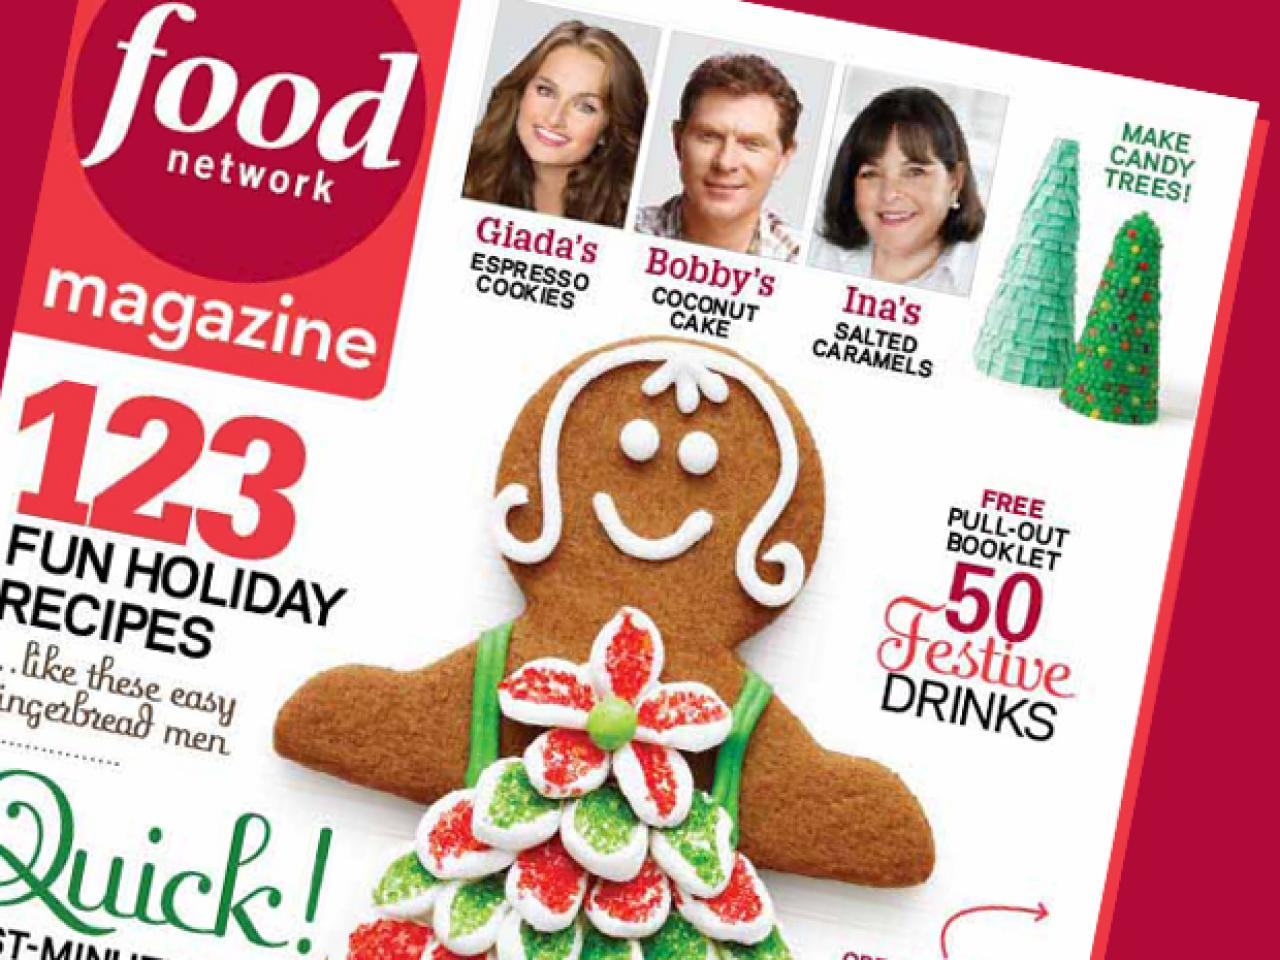 food network magazine december 2010 recipe index recipes and